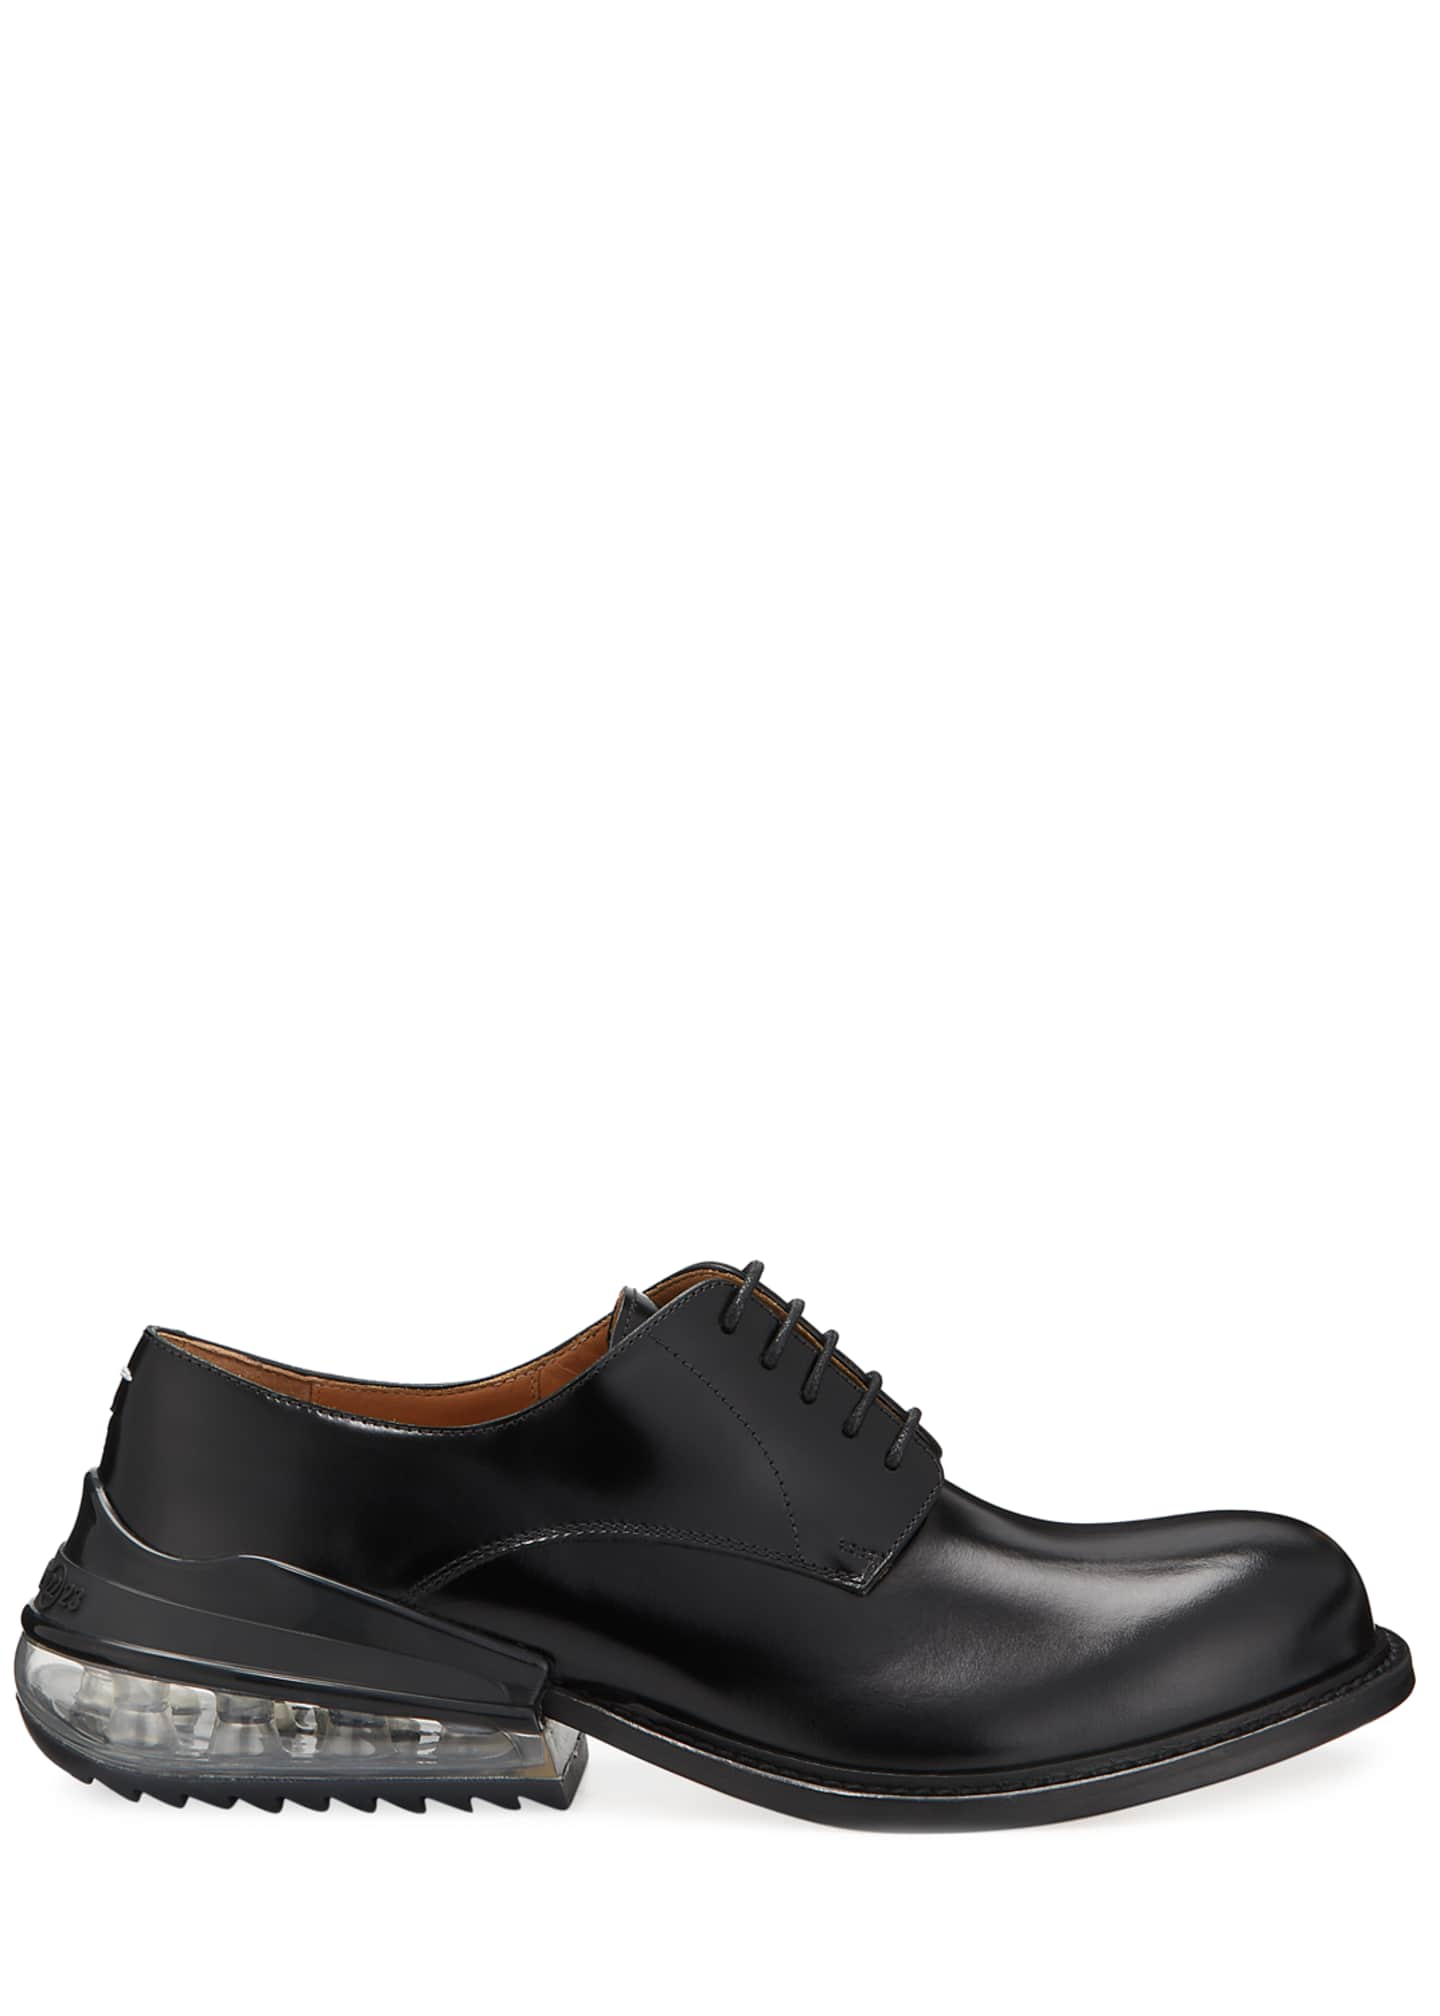 Image 3 of 5: Men's Airbag Clear-Heel Leather Derby Shoes